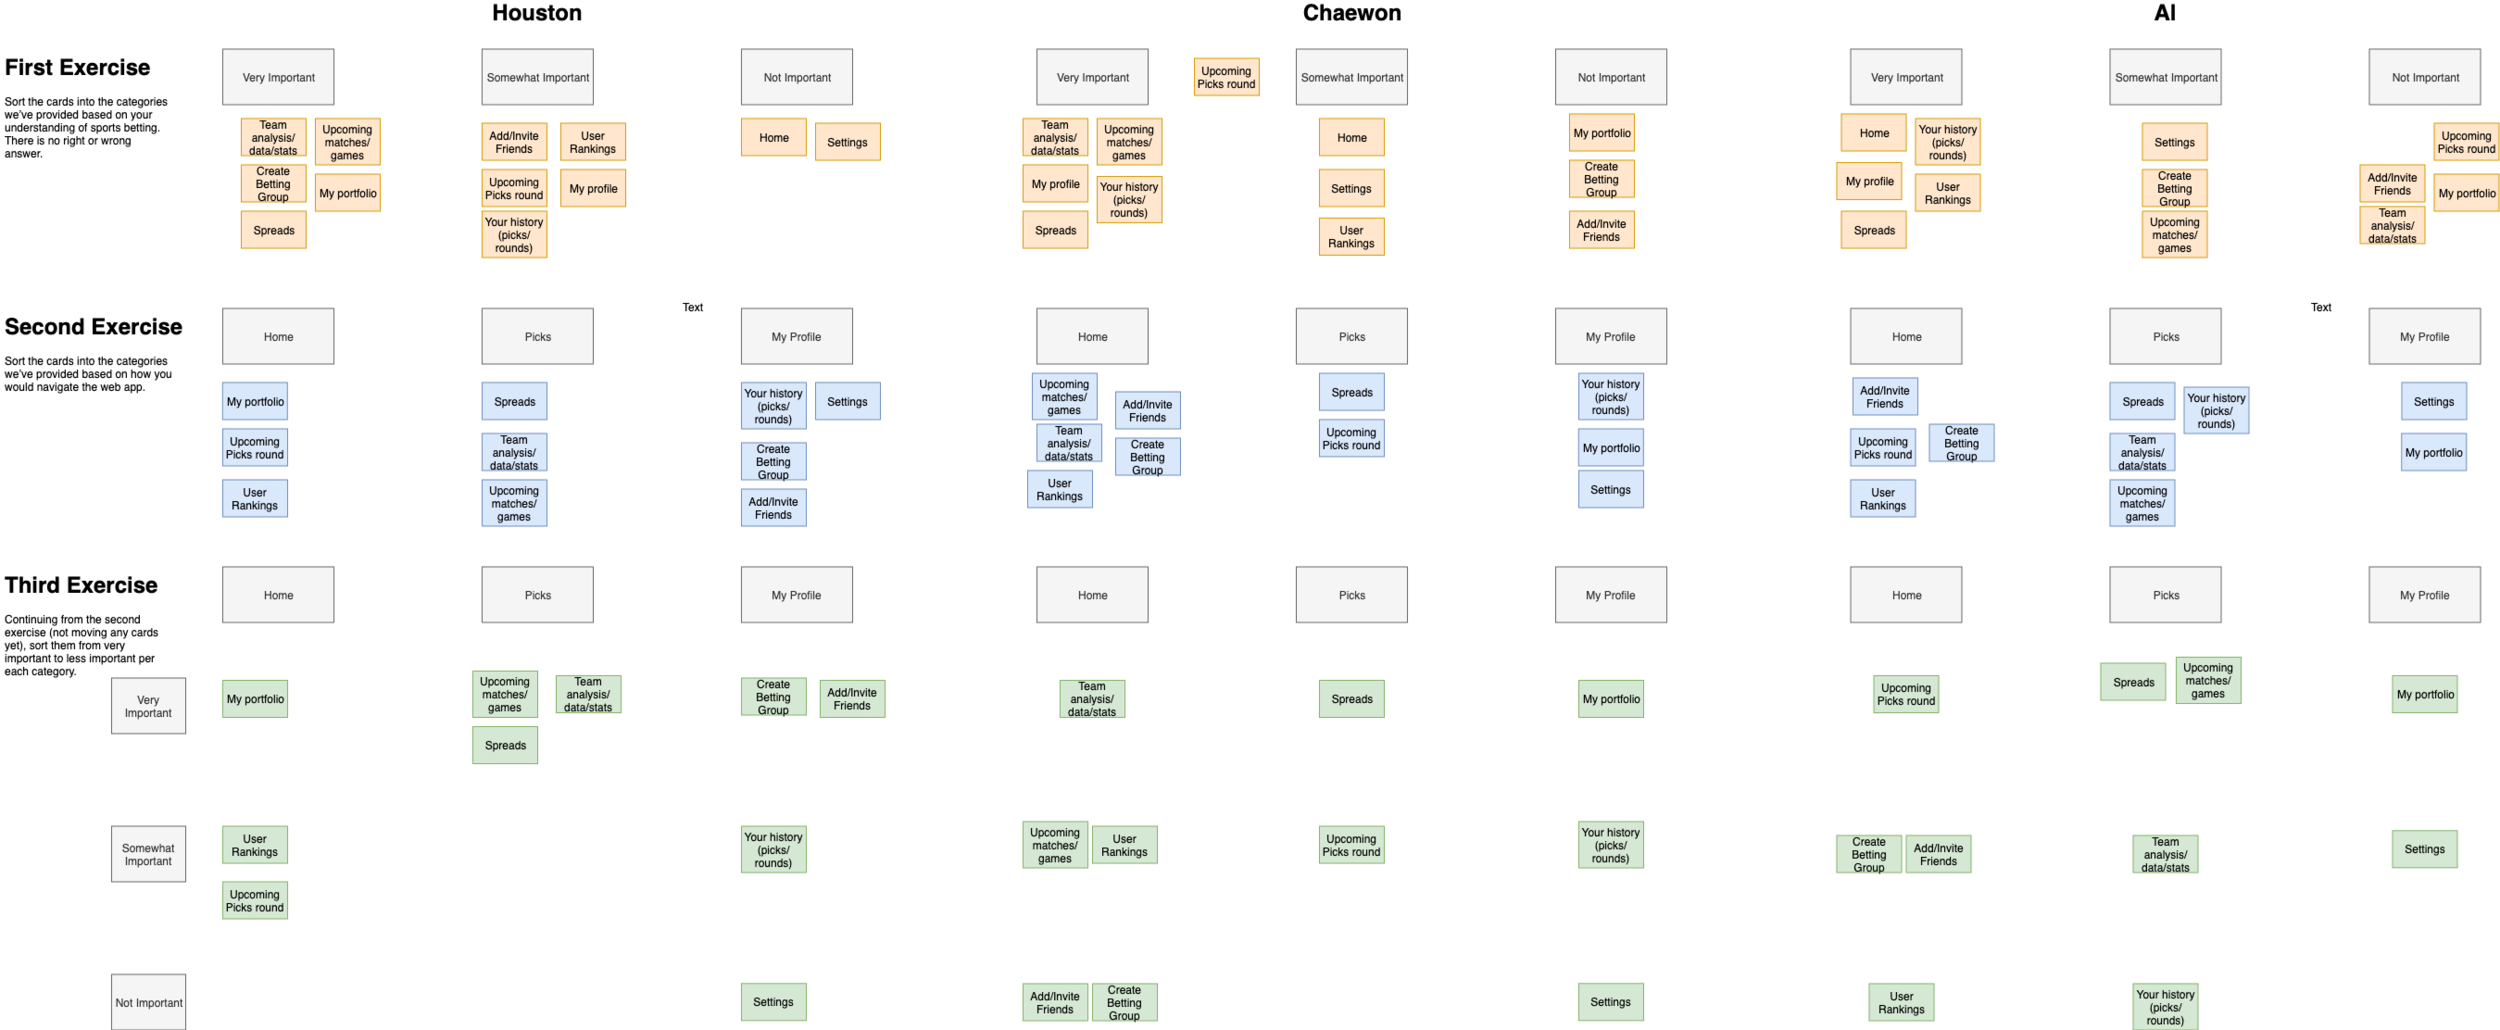 Copy of Sitemapping - Card sorting exercise.png